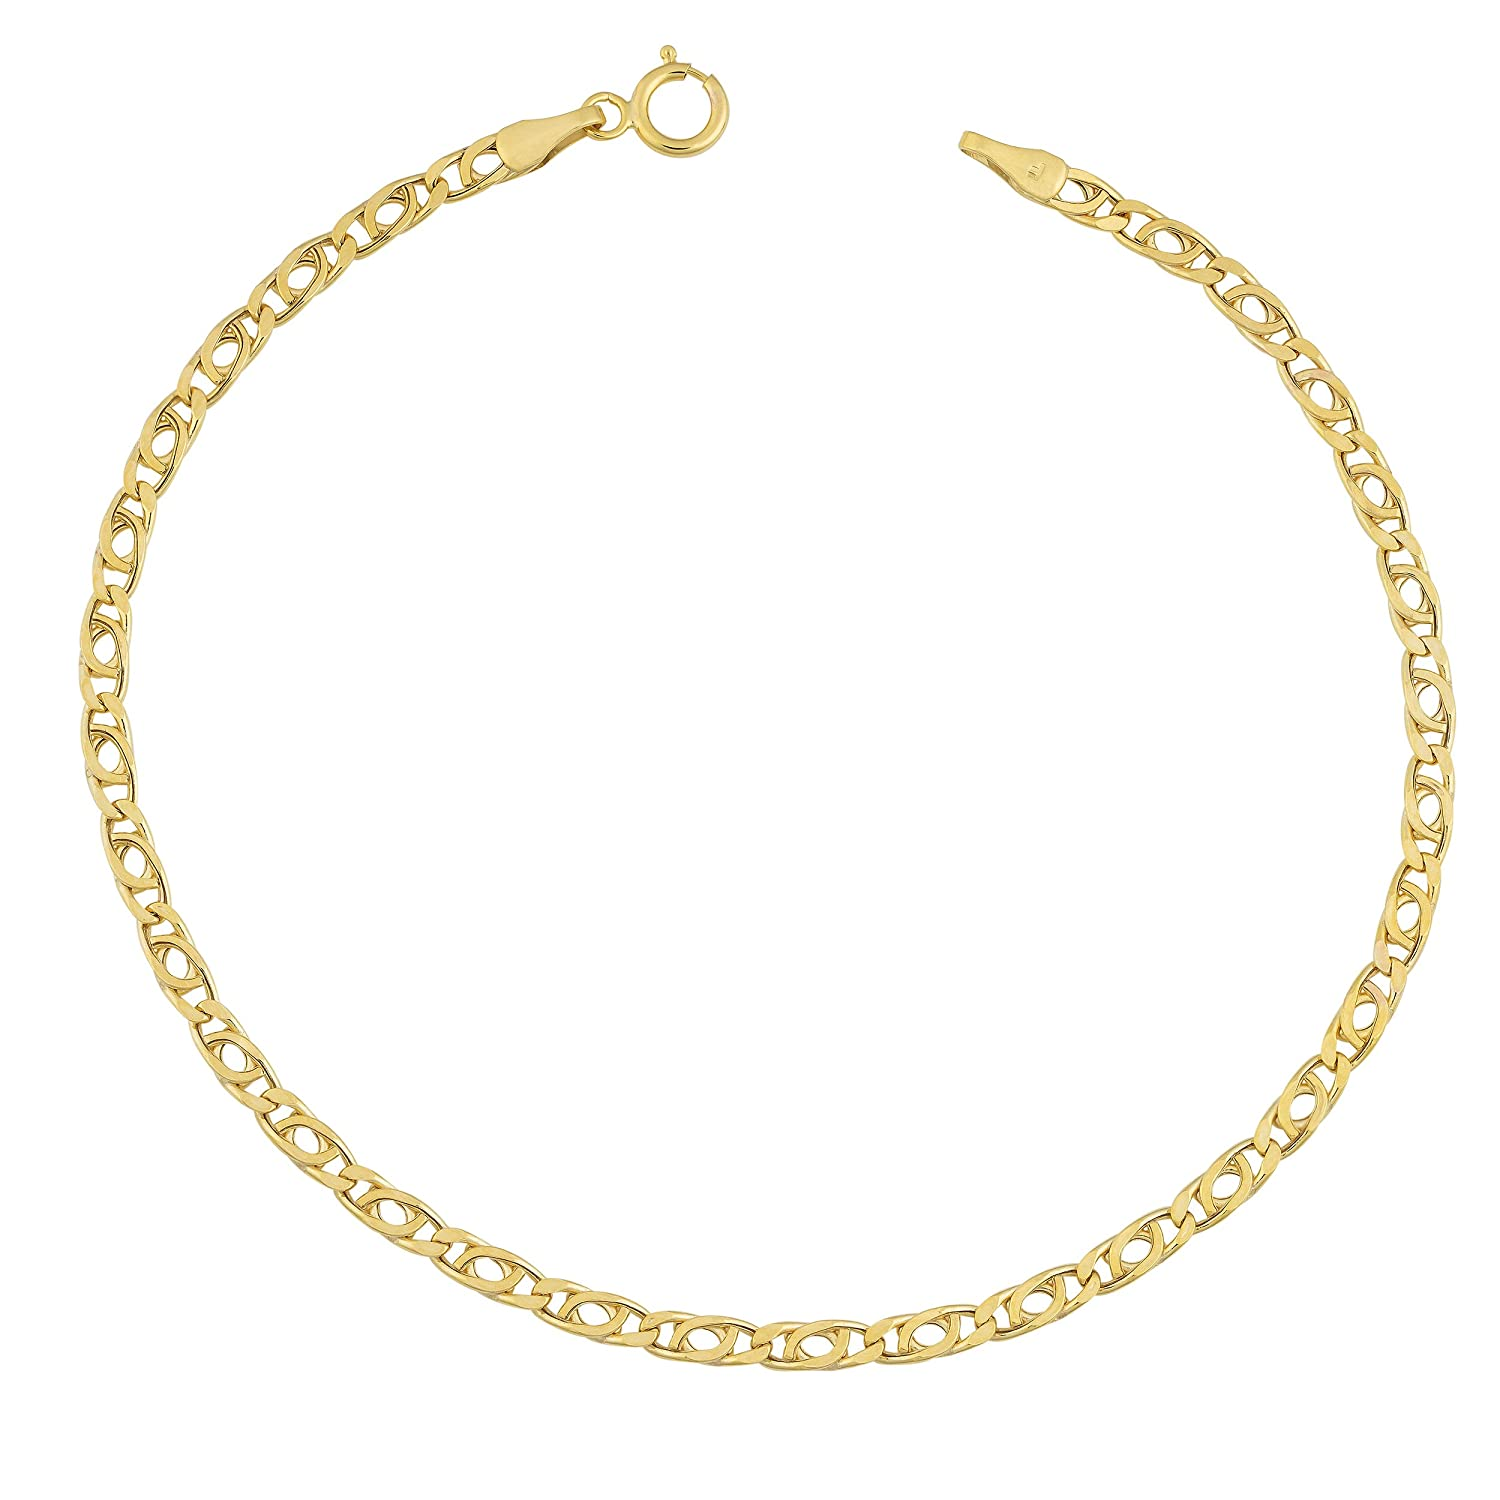 10k Yellow Gold 2.5mm High Polish Hollow Flat Link Bracelet (7.5 inch)